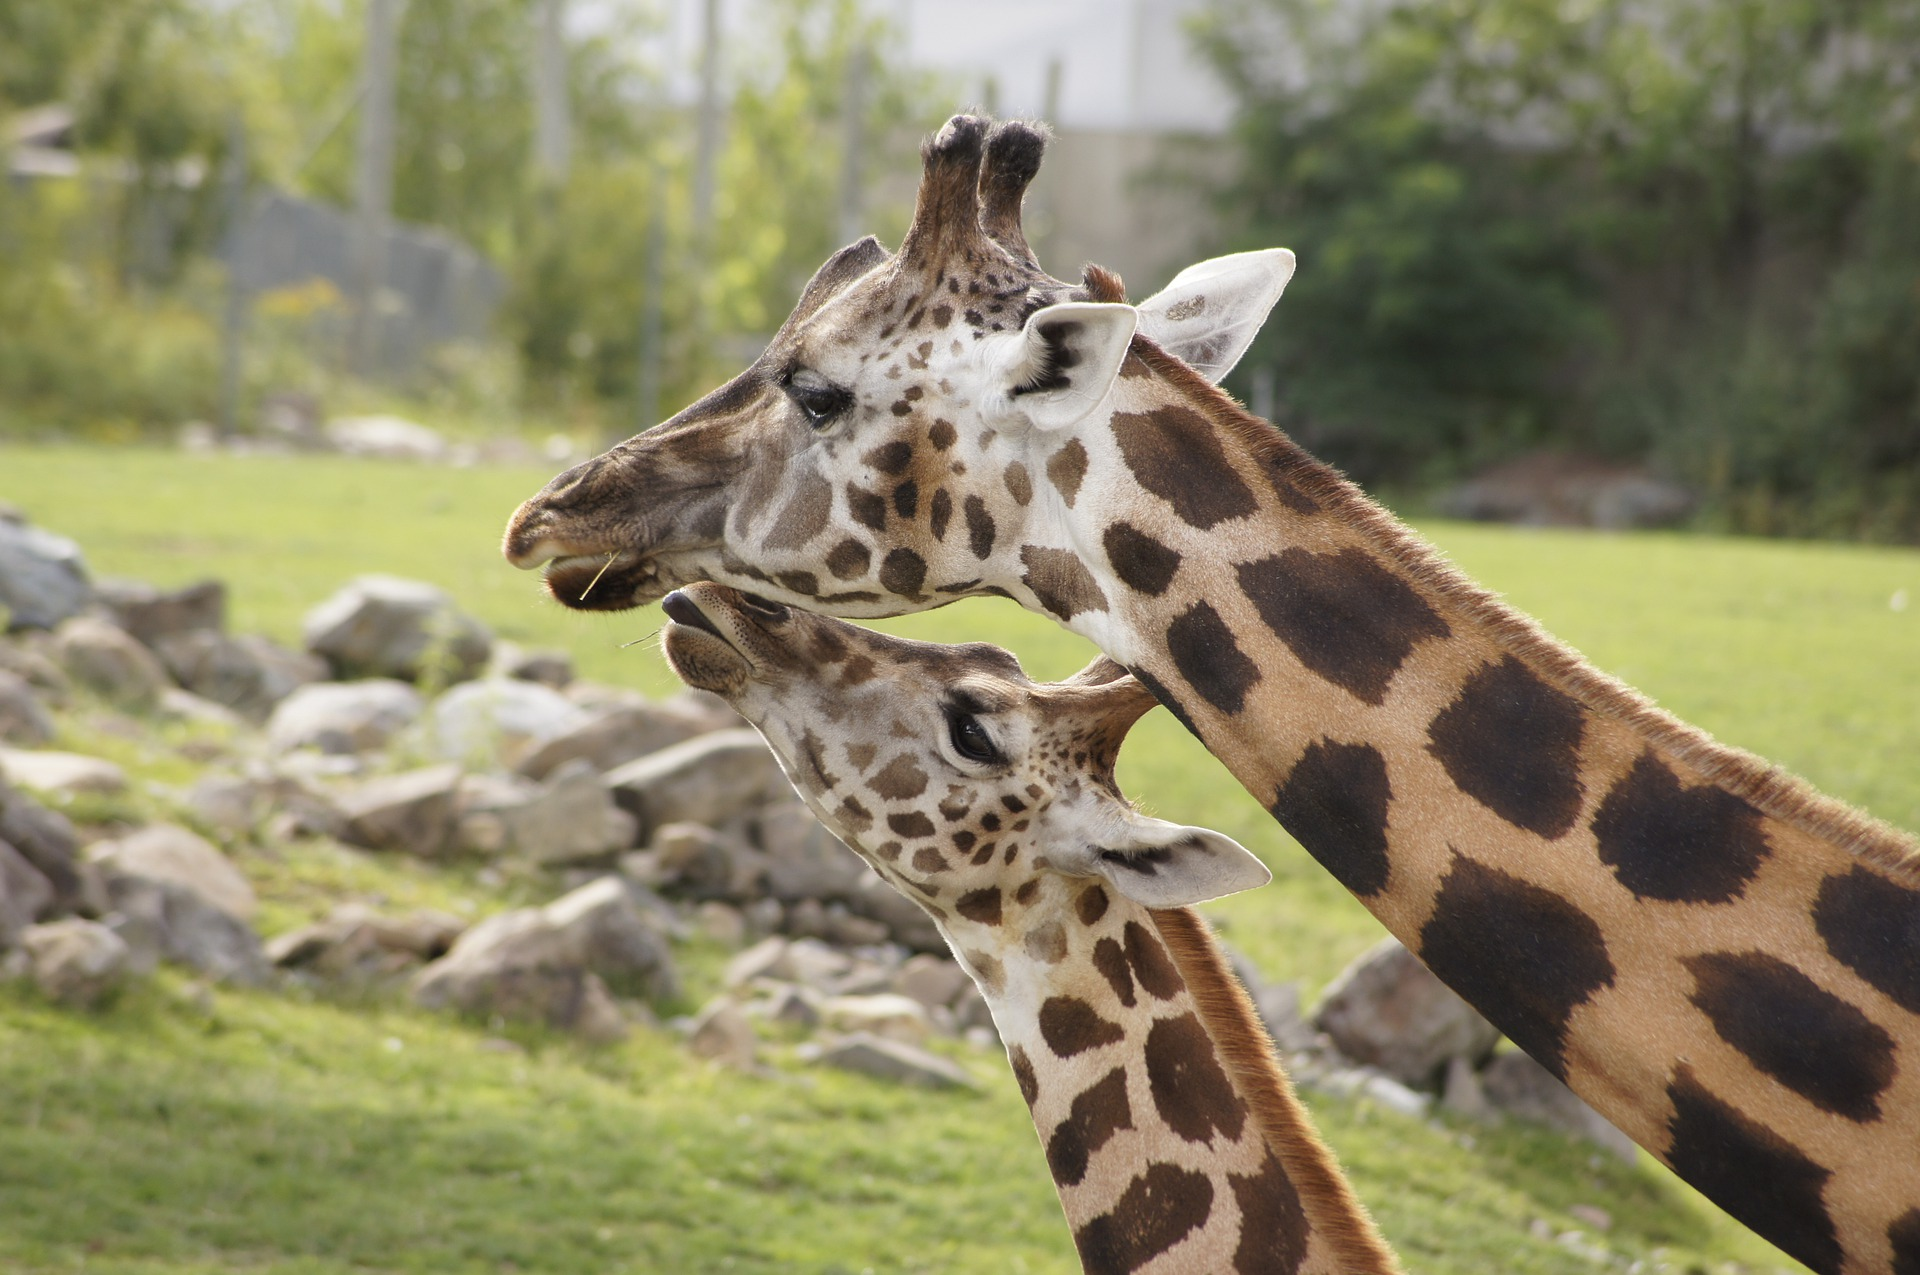 Books featuring giraffes to pair with our virtual Cincinatti Zoo field trip